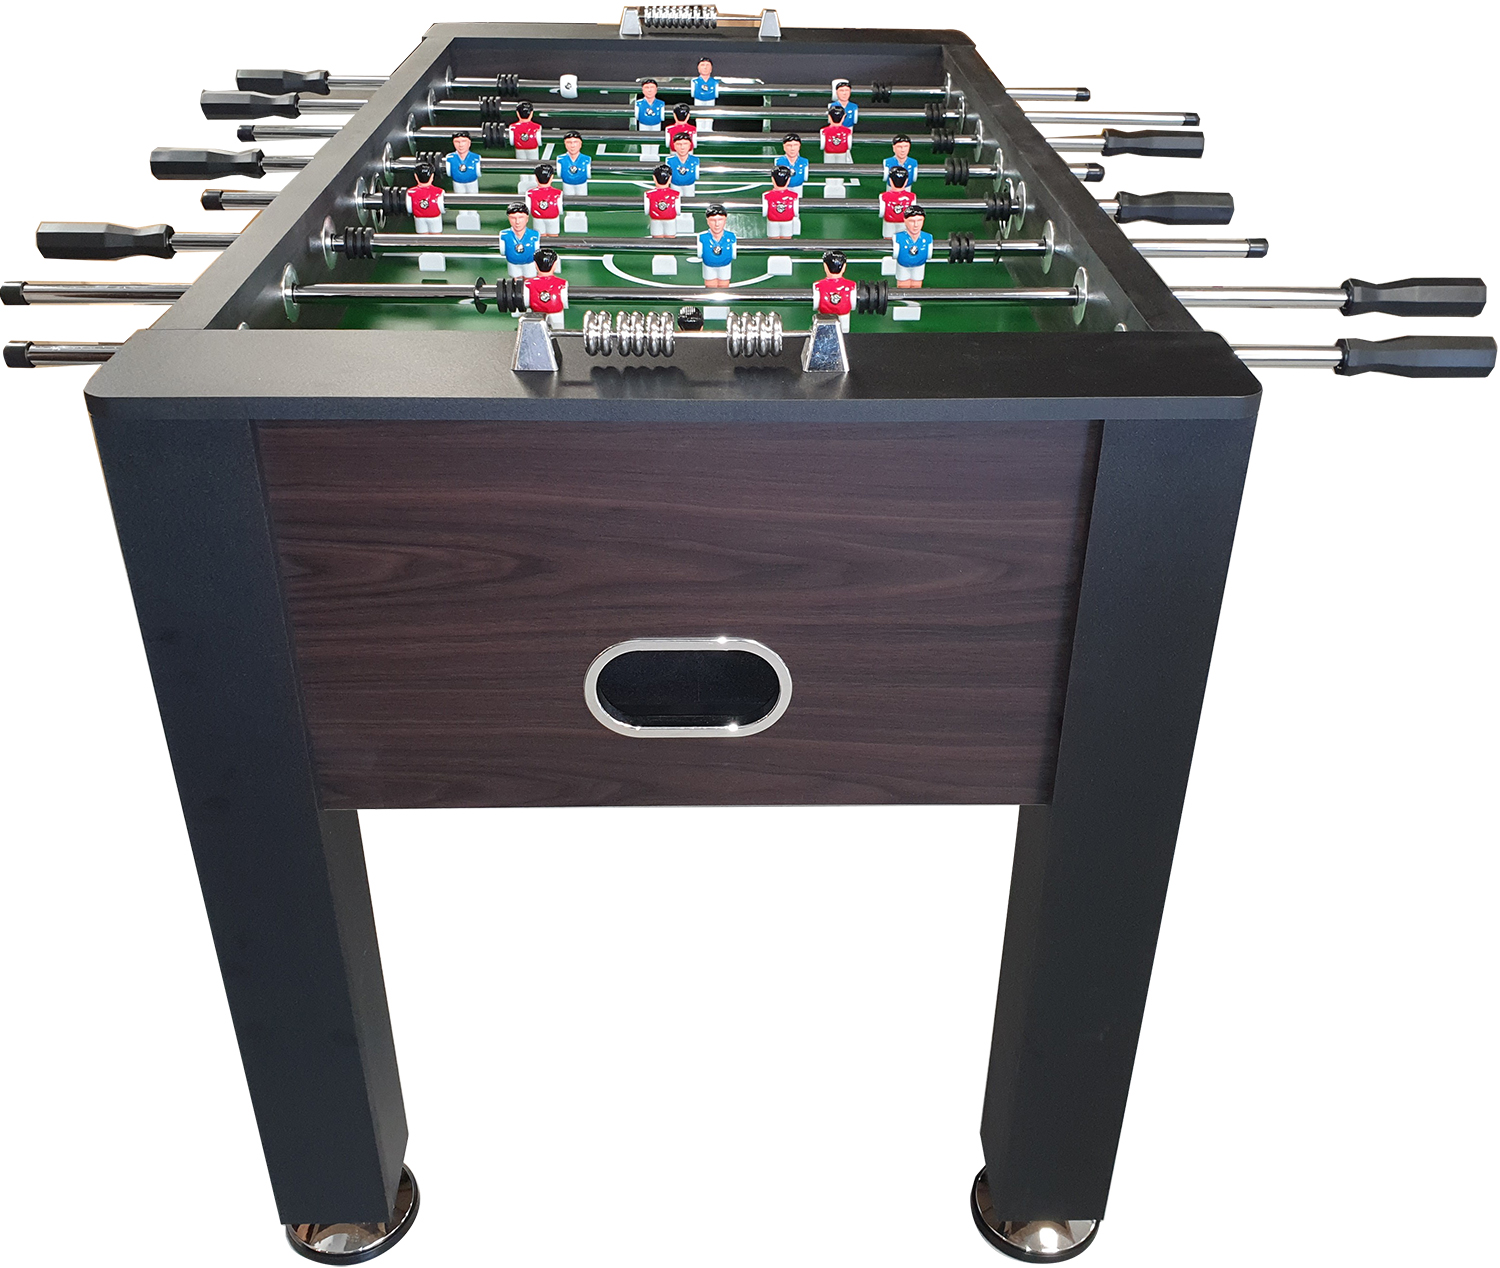 VC0198: Voetbaltafel TopTable Victory #5